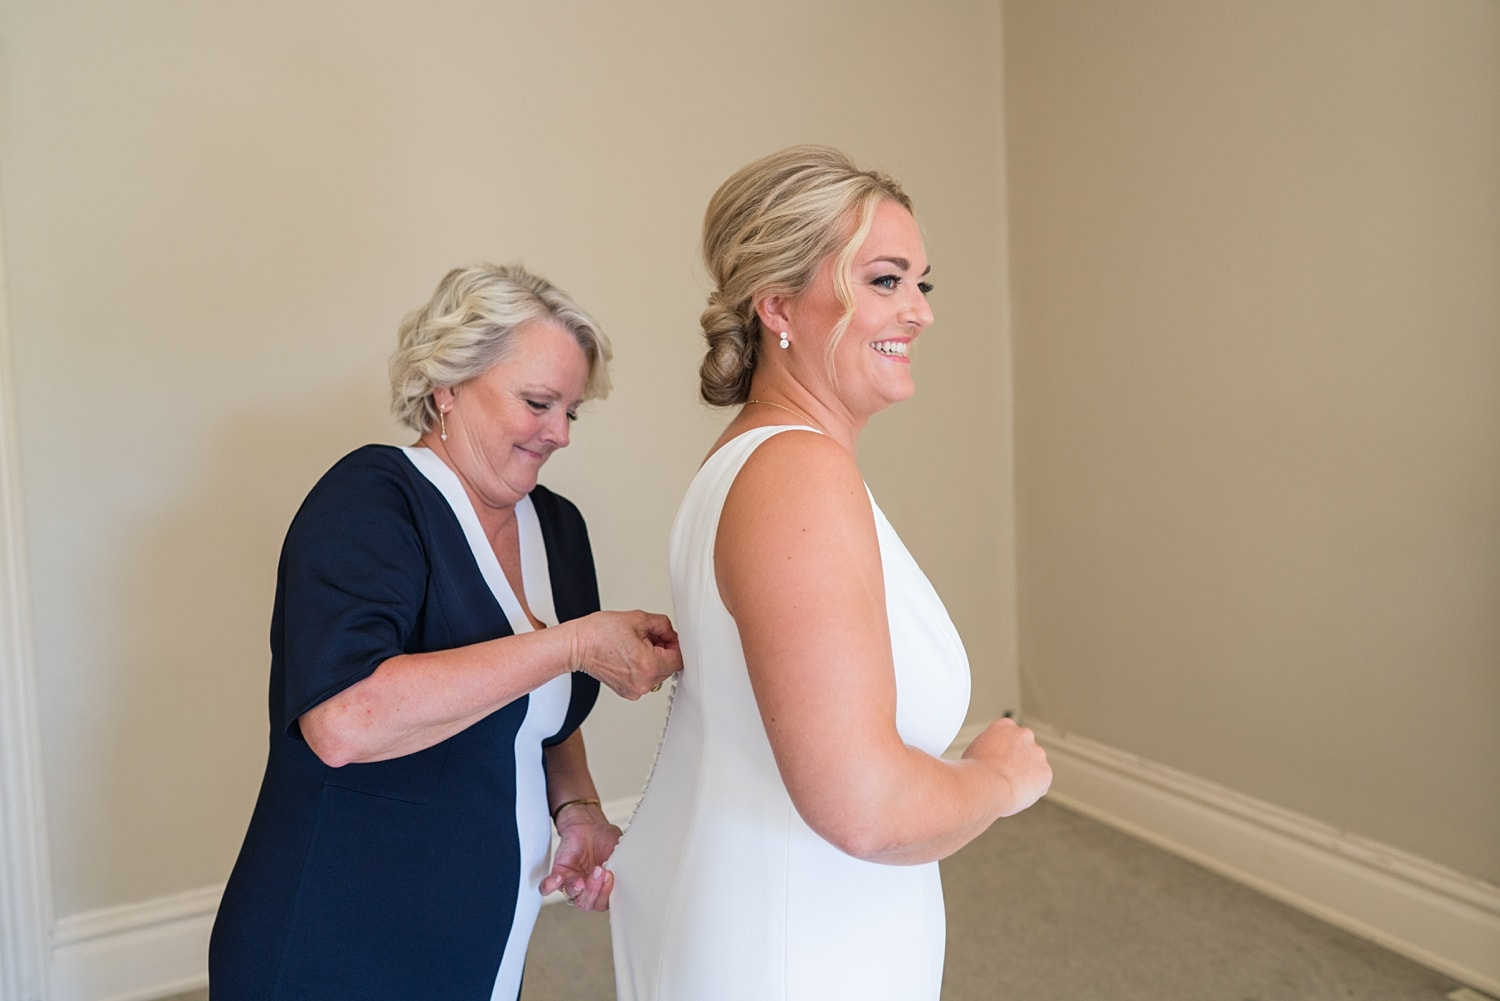 mom buttoning up the dress